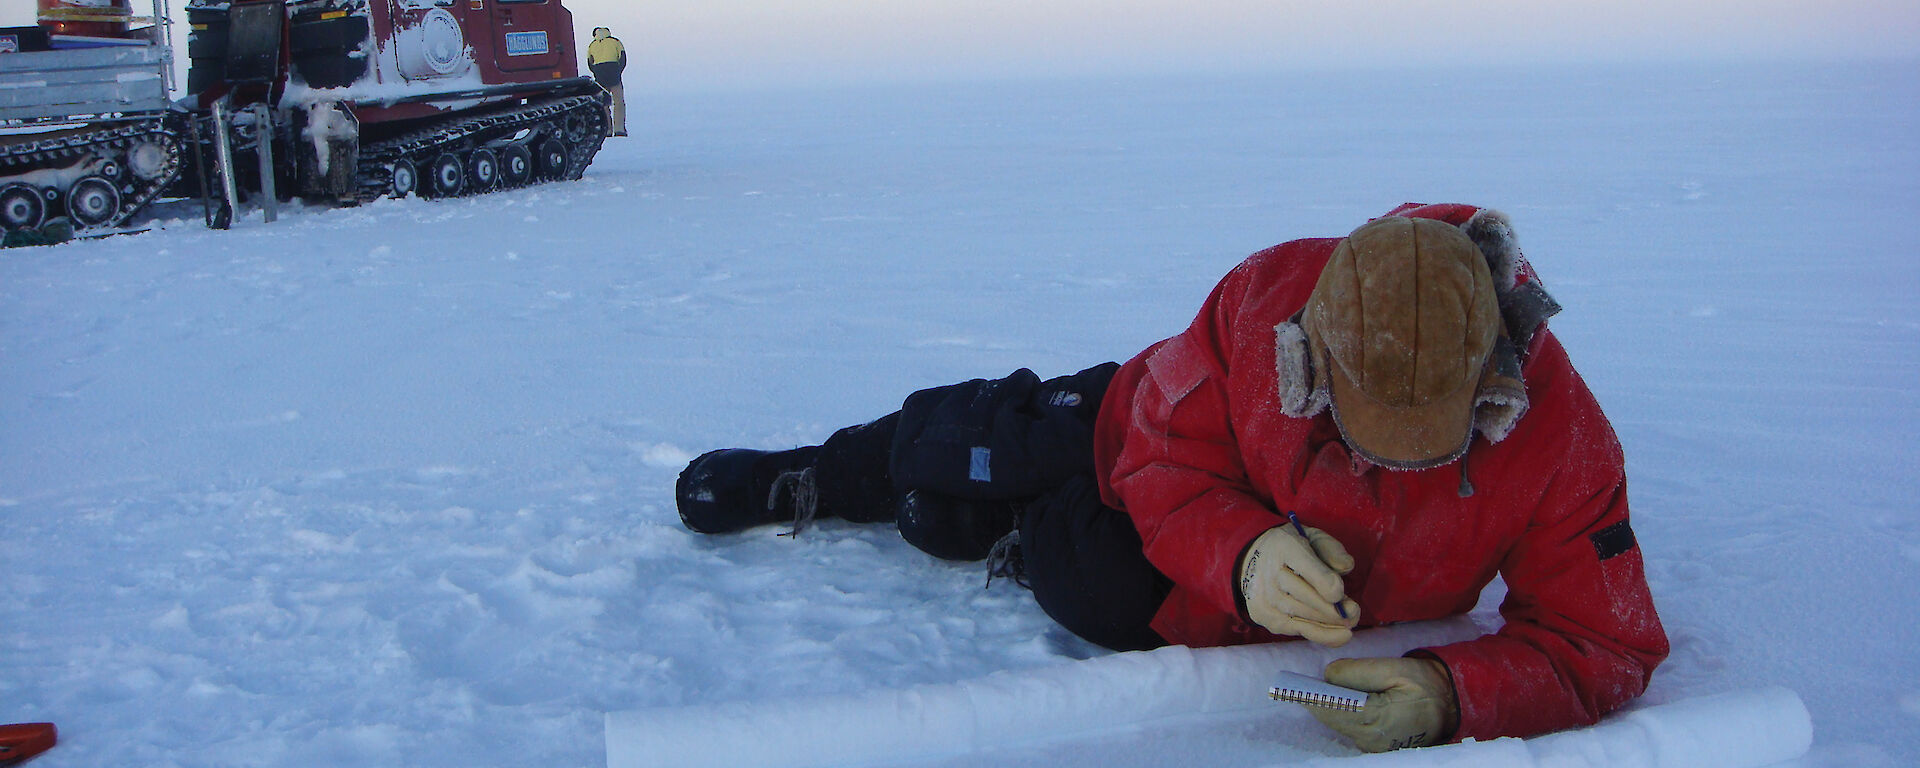 Ice core chemist lying on ice, cataloguing ice cores